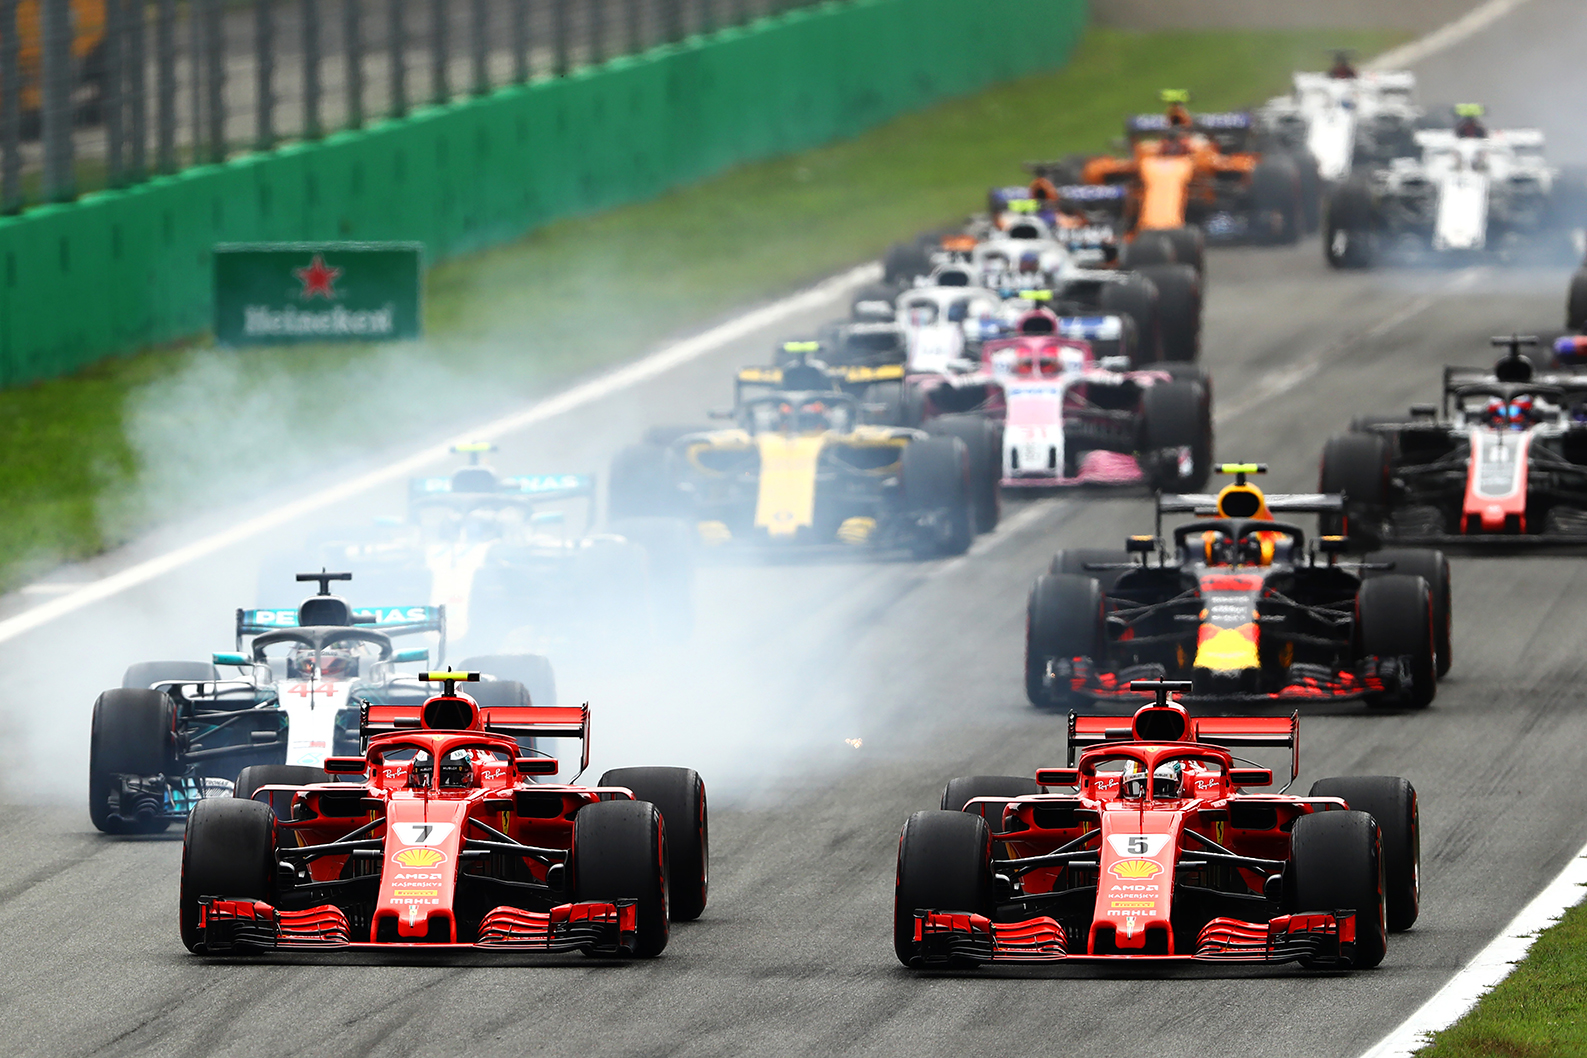 What A Race Weekend! 2018 Italian GP of F1 - Dro For Cars